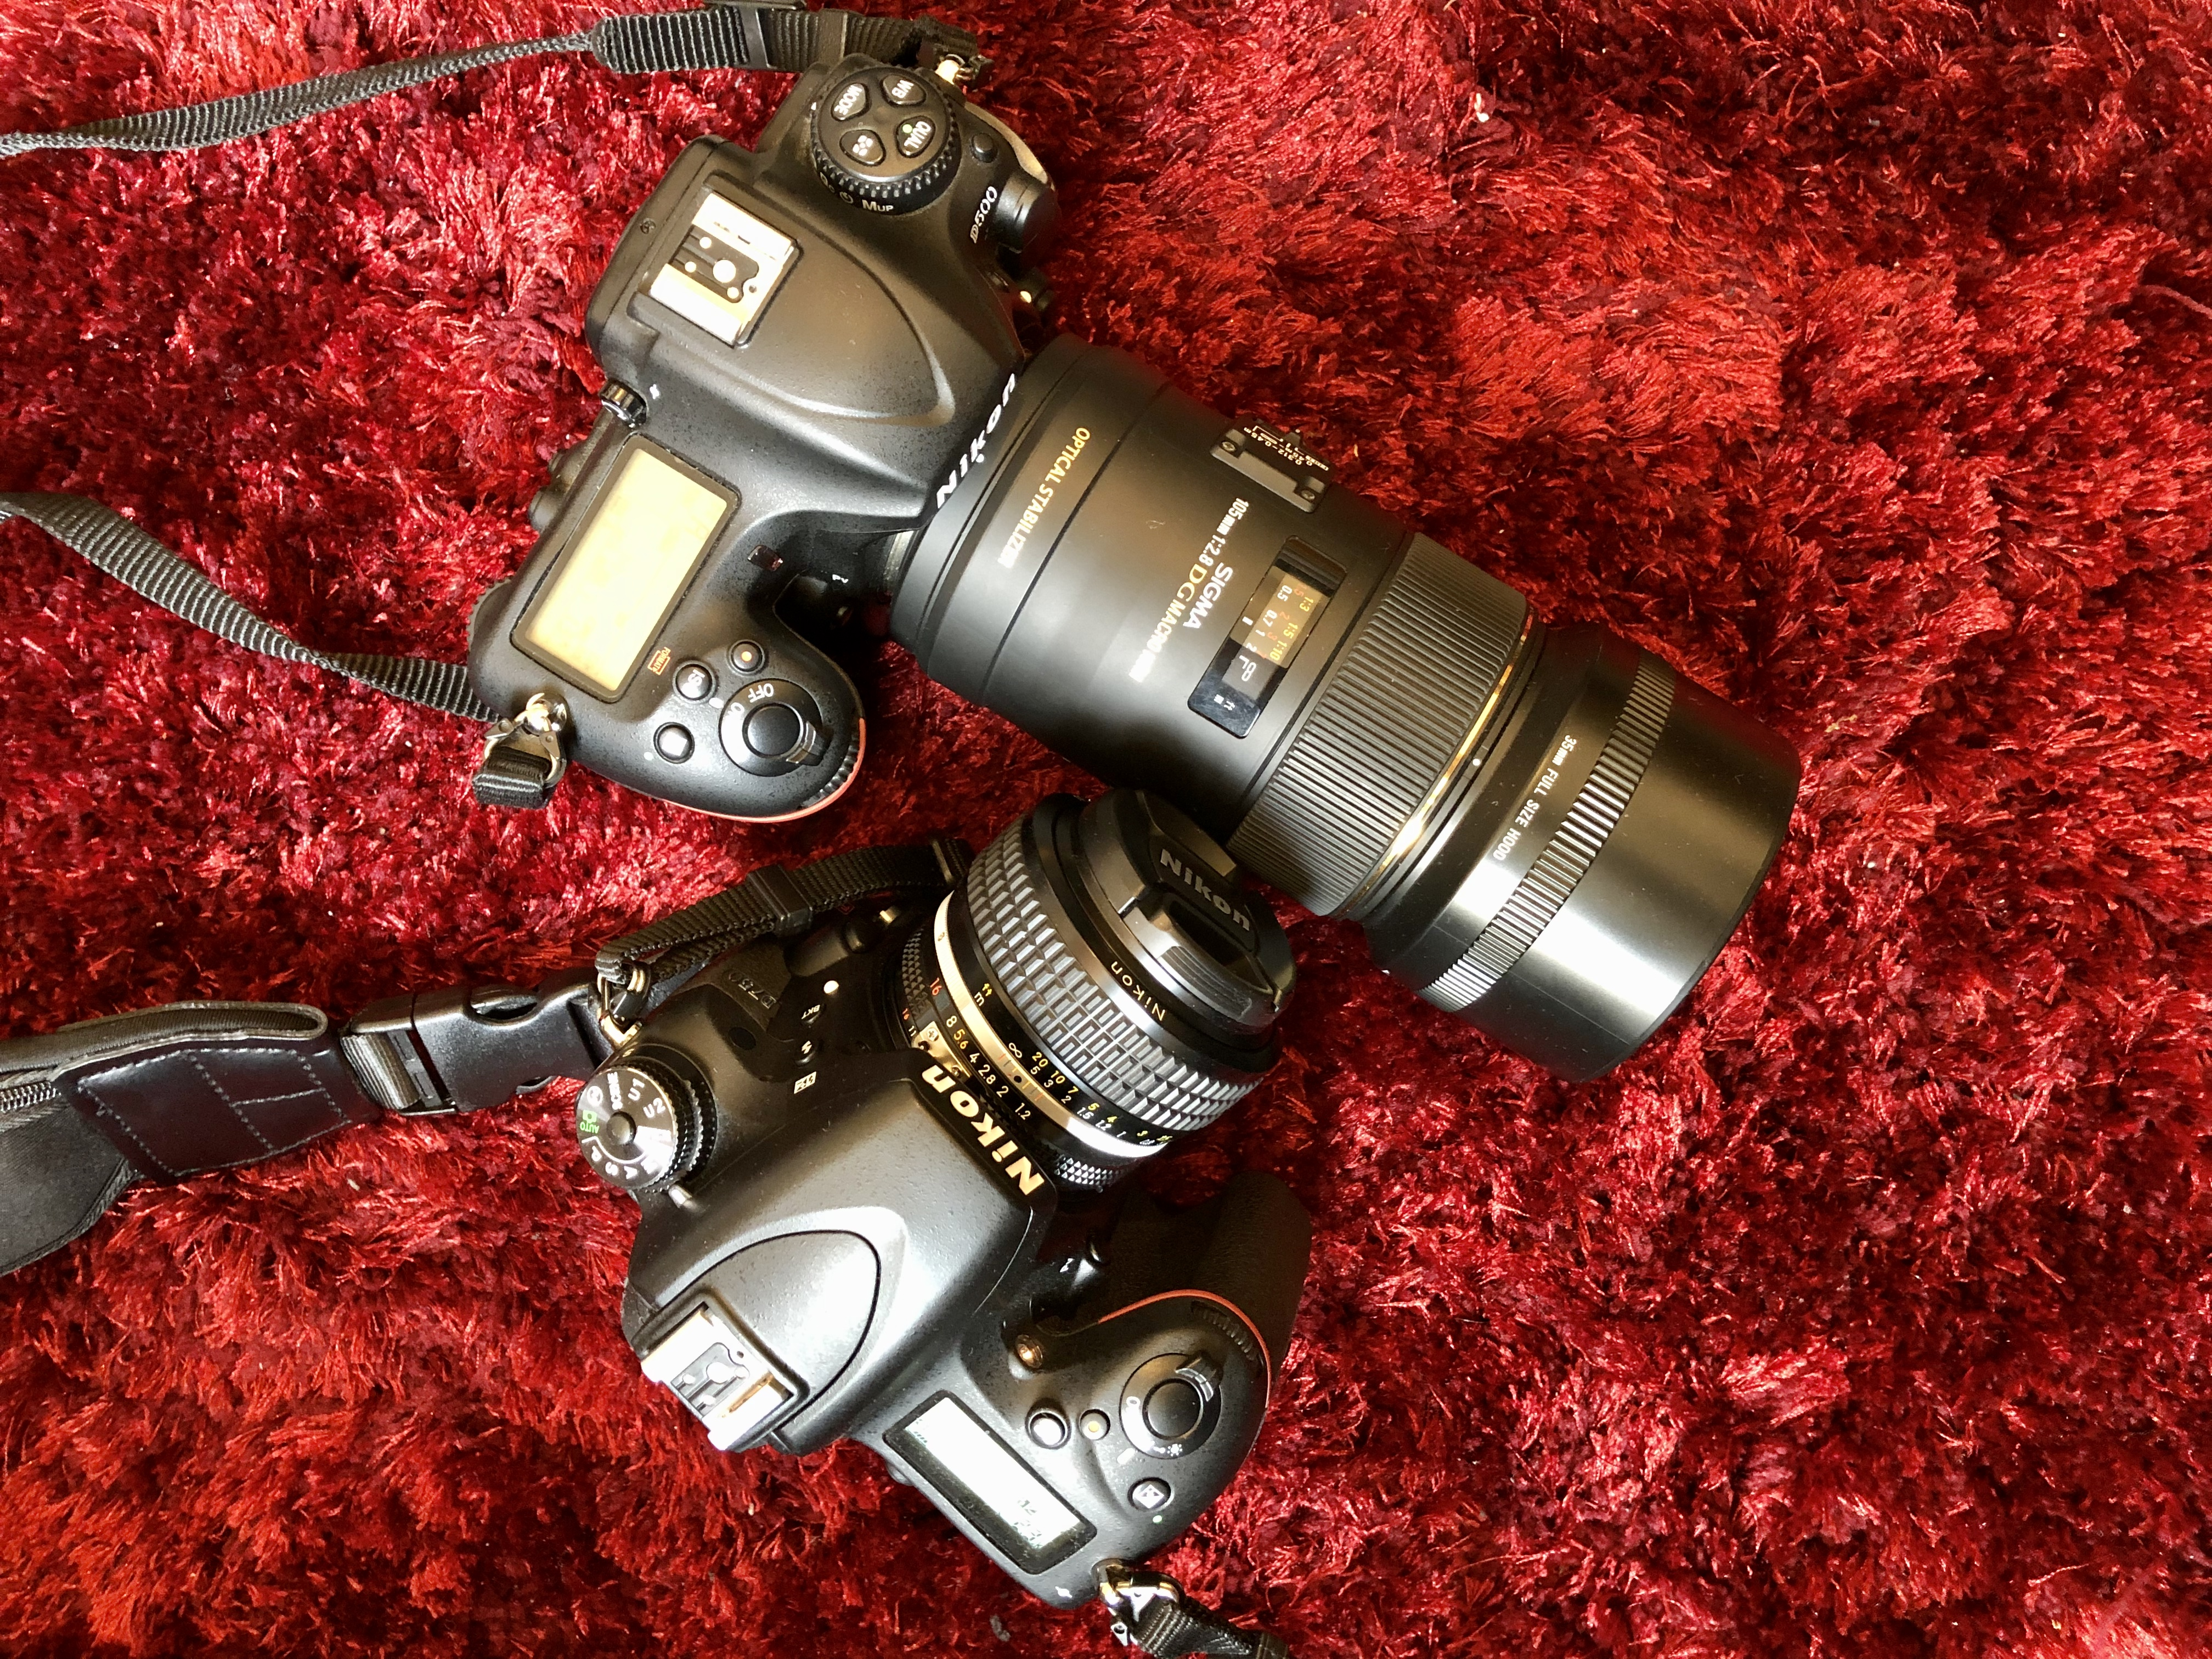 50mm lens vs 105mm lens which one is better?